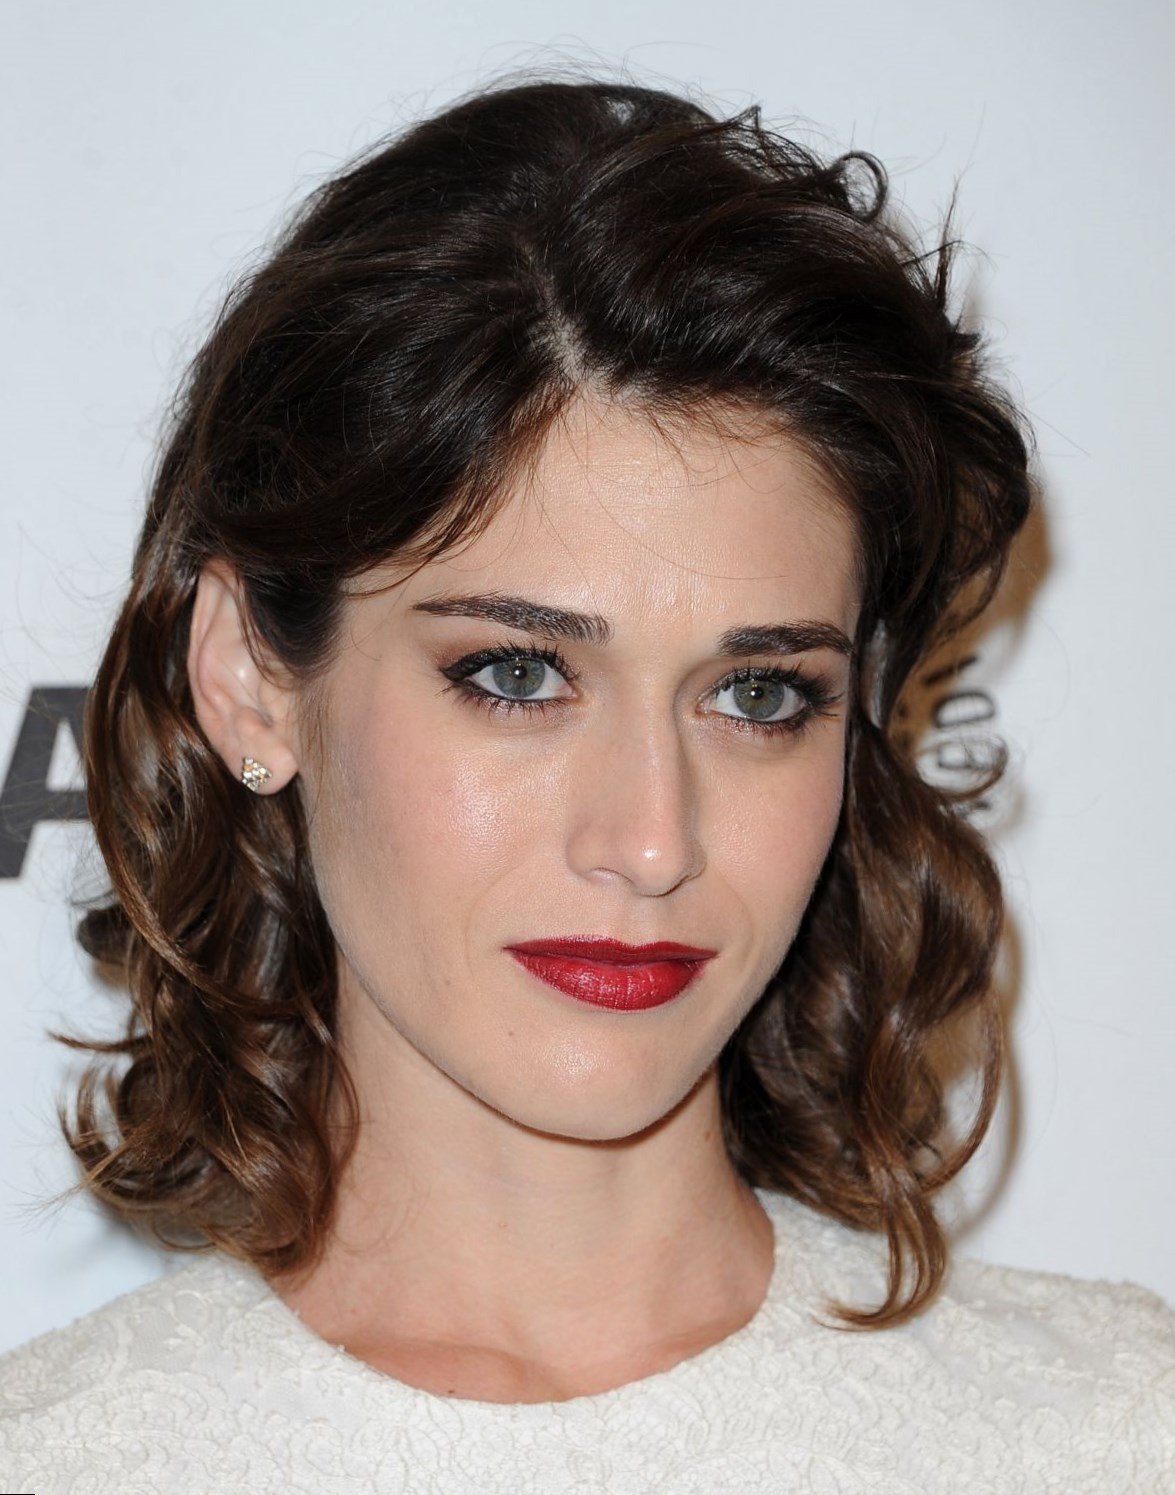 Lizzy caplan love is the drg